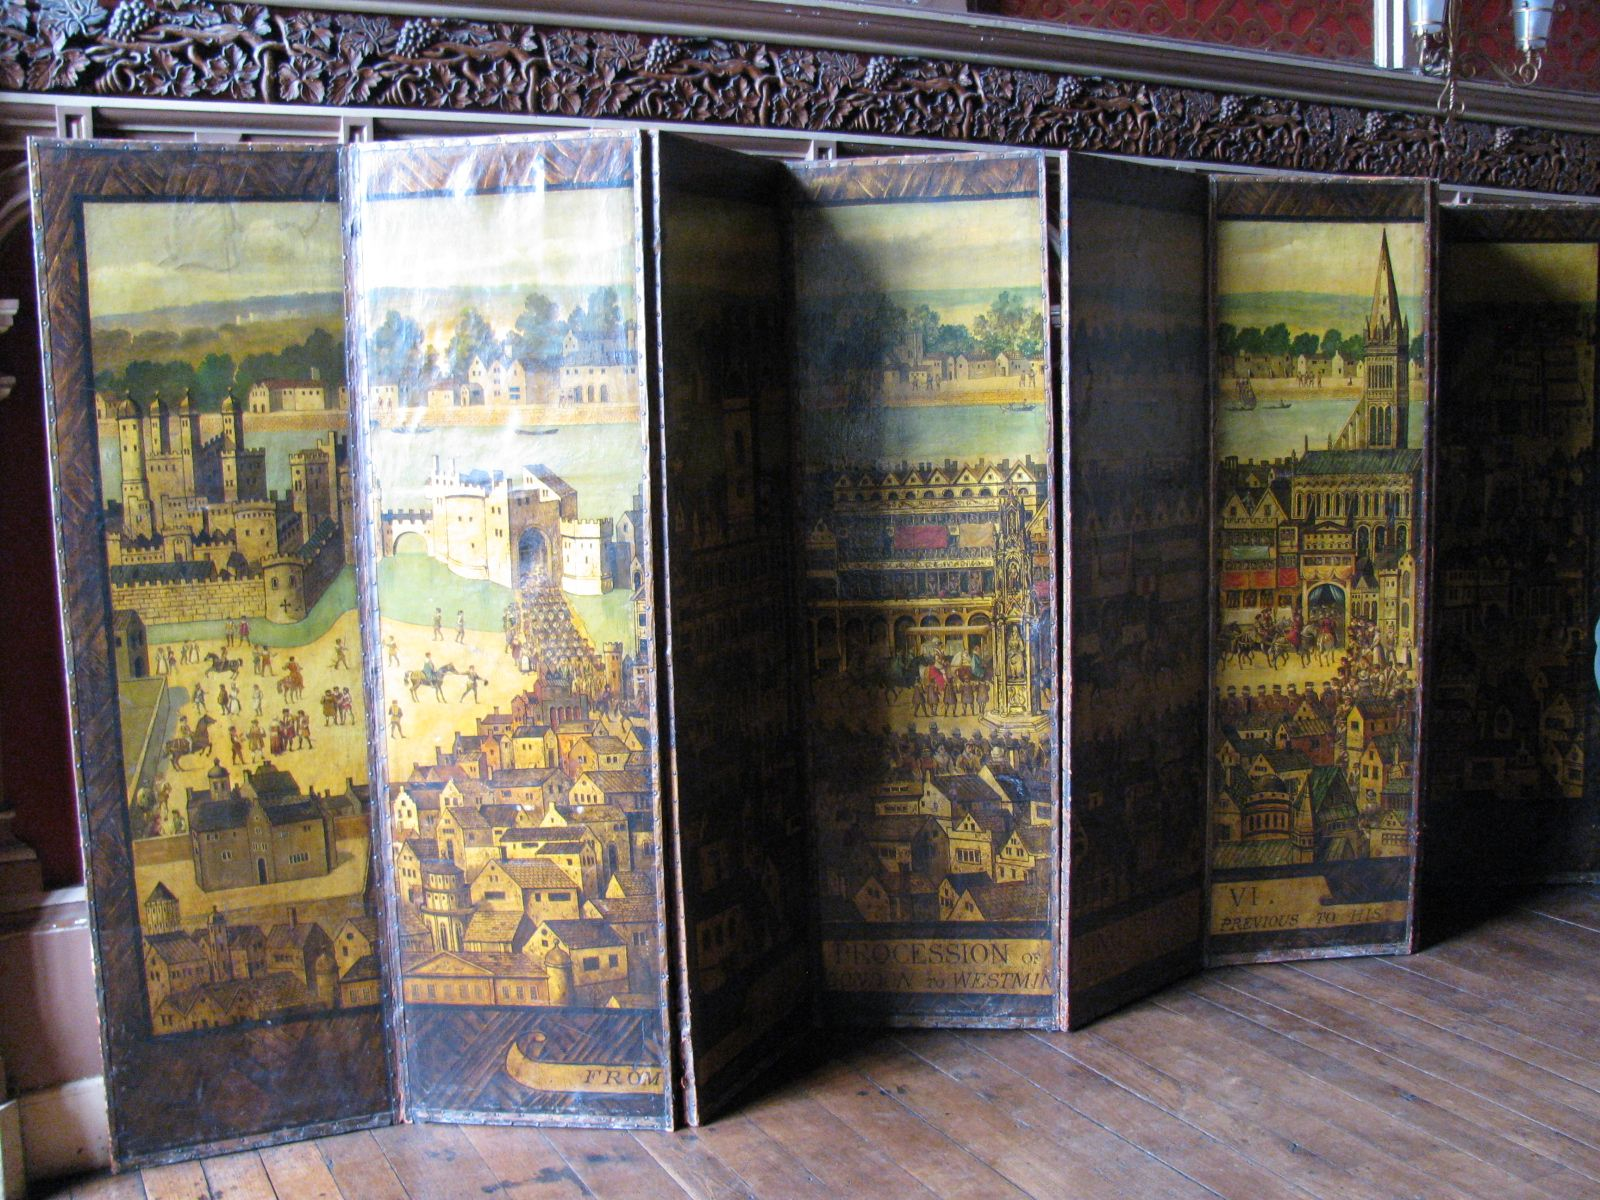 Edward VI's processional entry into the City of London in 1547. Copy after the original wall painting at Cowdray House, Sussex, now lost. D&DA-V&A